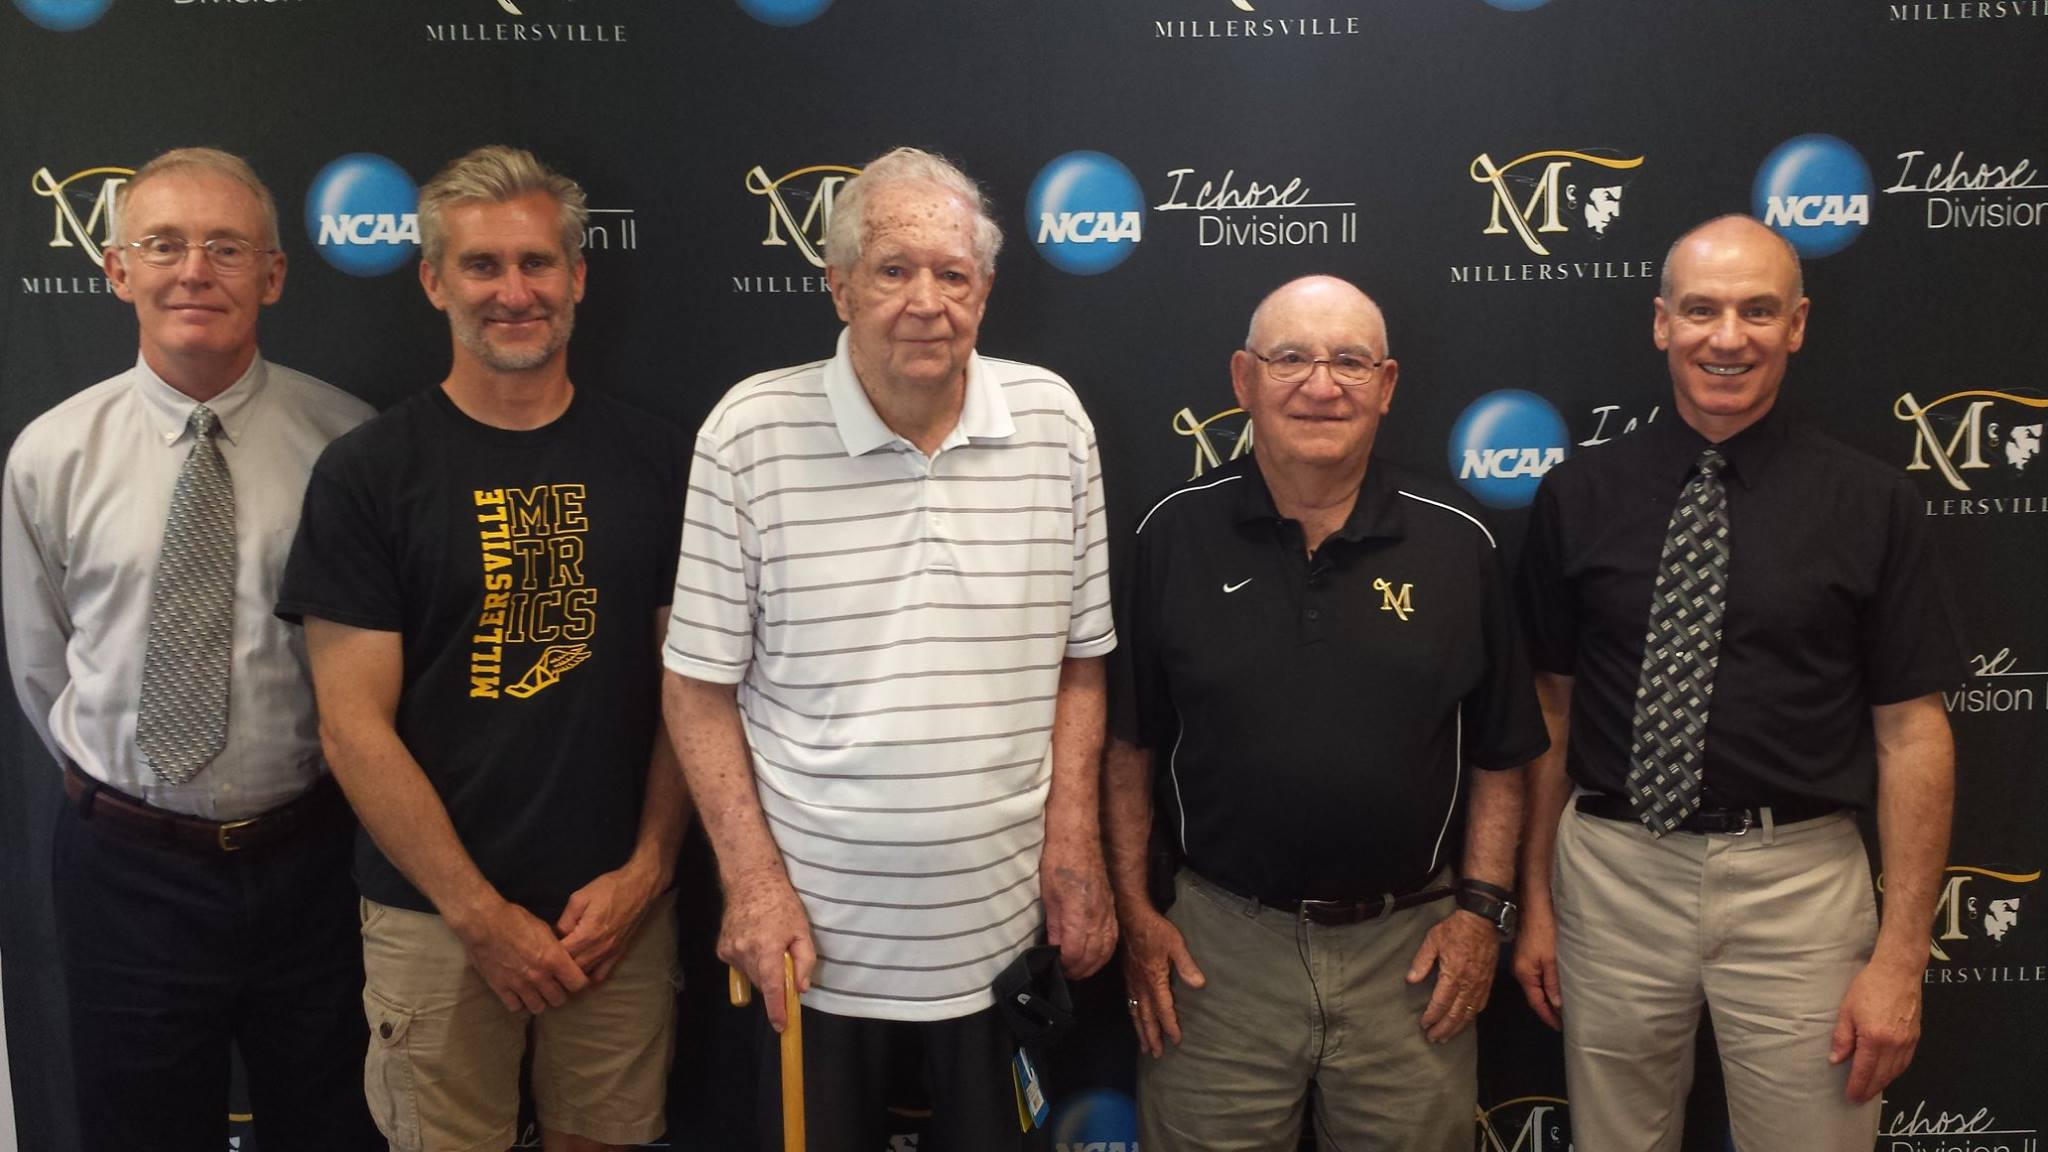 (Left to right) Tom Ecker (interviewer, All-American, and former MU runner), Andy Young (current coach), Art Hulme (founder and former coach of the cross country program and first track & field coach of the modern era), Cy Fritz (former MU cross country and track & field coach and MU's most successful coach of any sport), and Bob Vasile (interviewer and former MU runner)